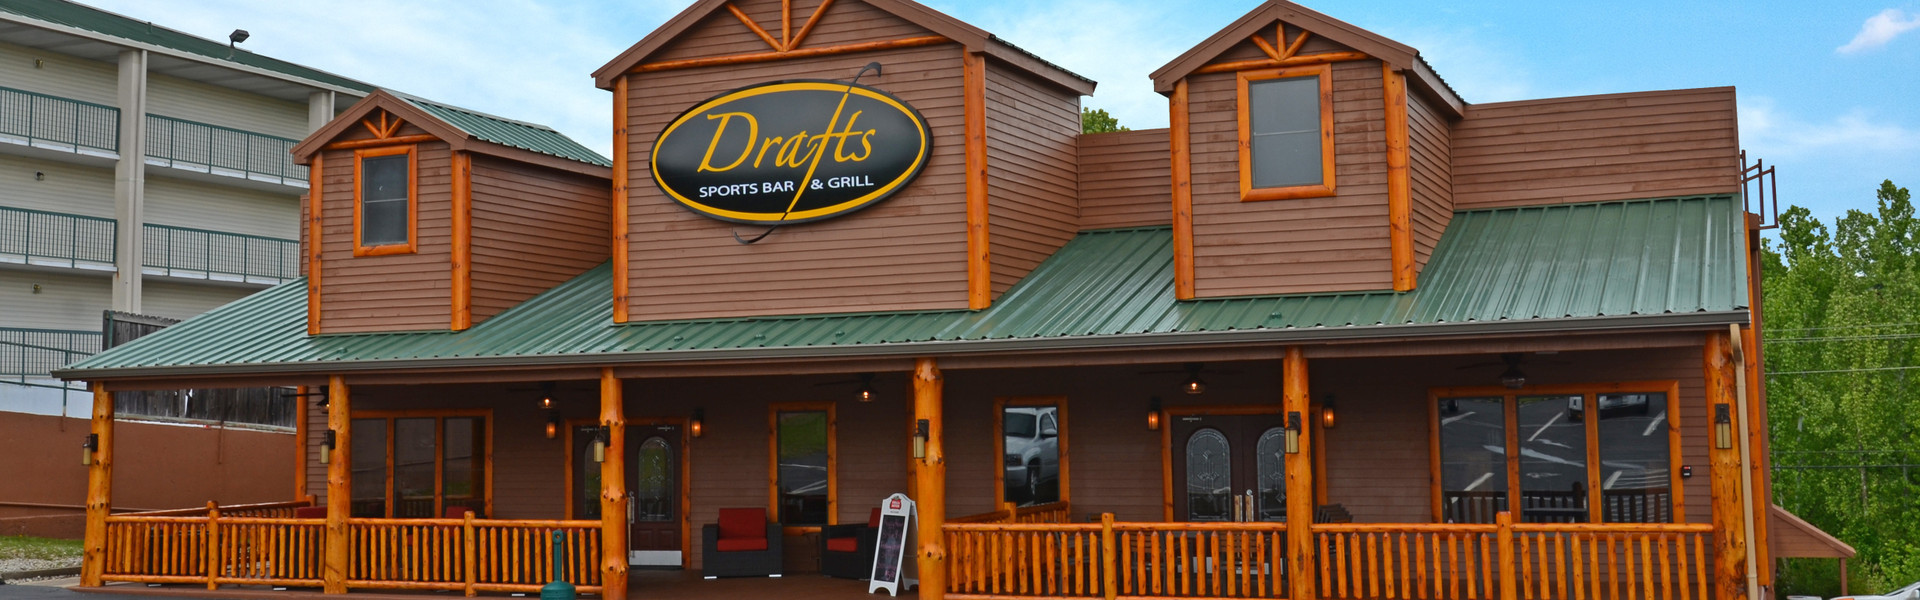 Black Friday Breakfast at Drafts Sports Grill | Westgate Branson Woods Resort